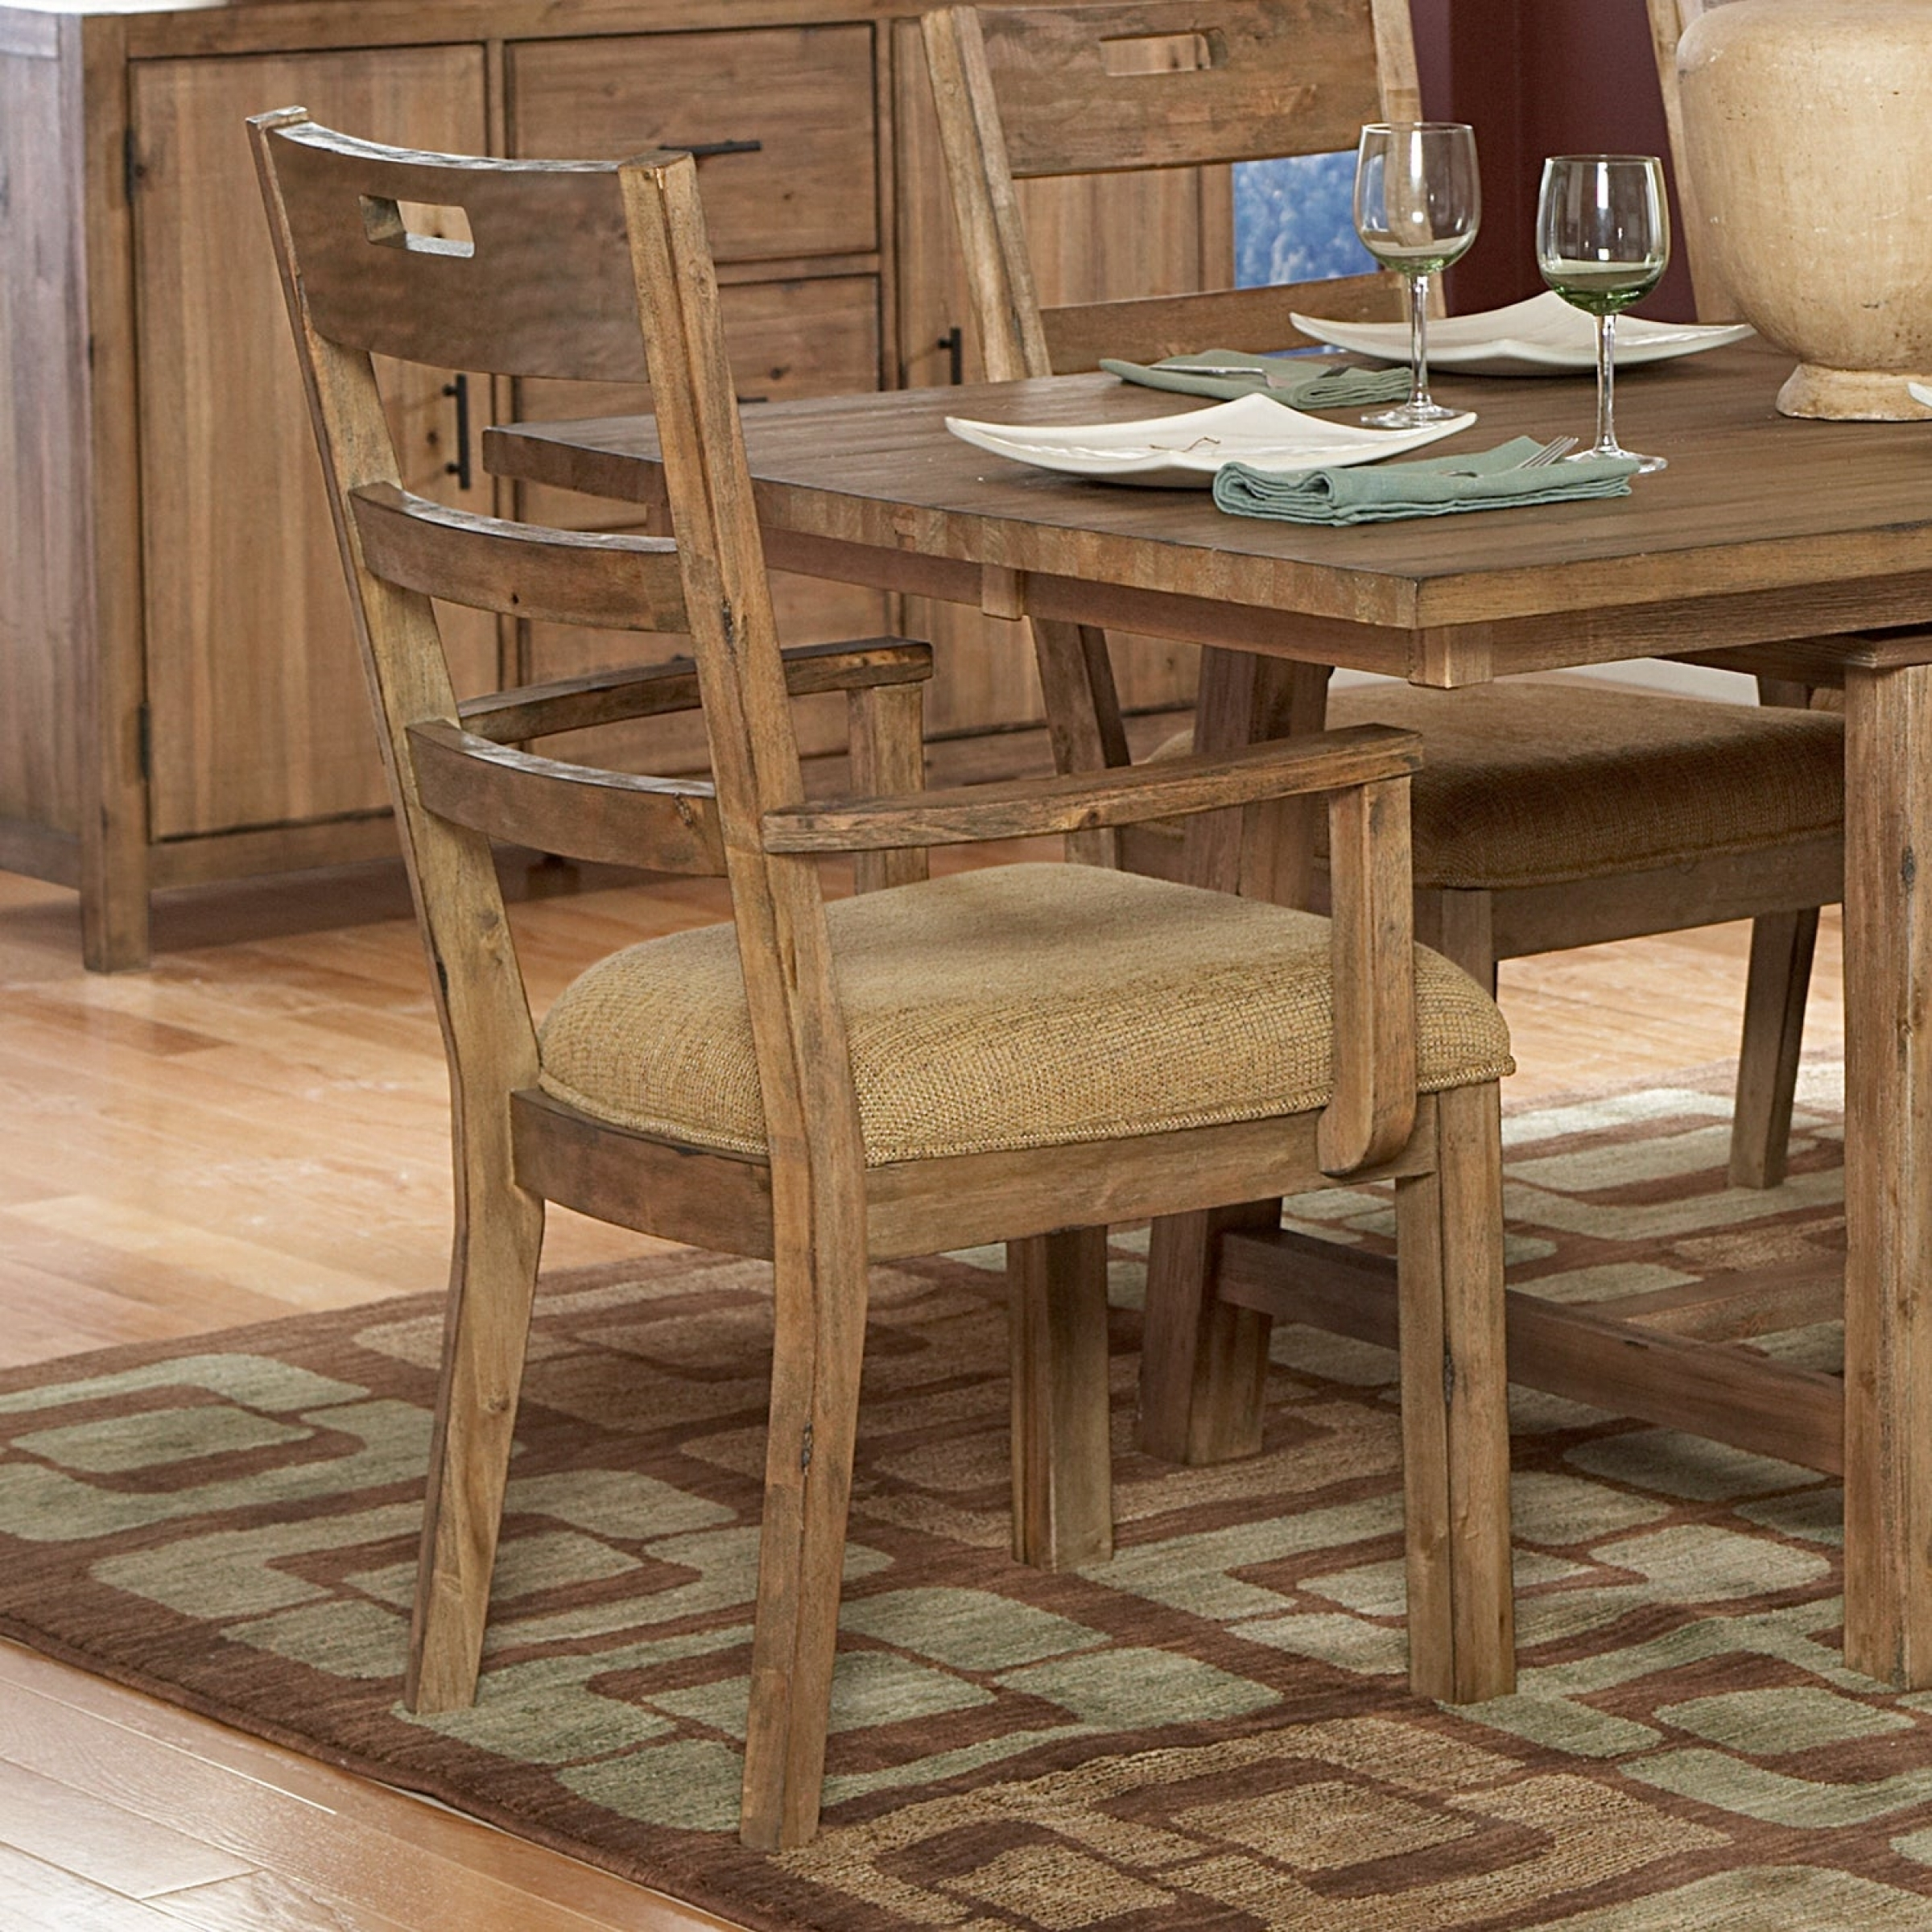 Dining Room Chairs with Arms